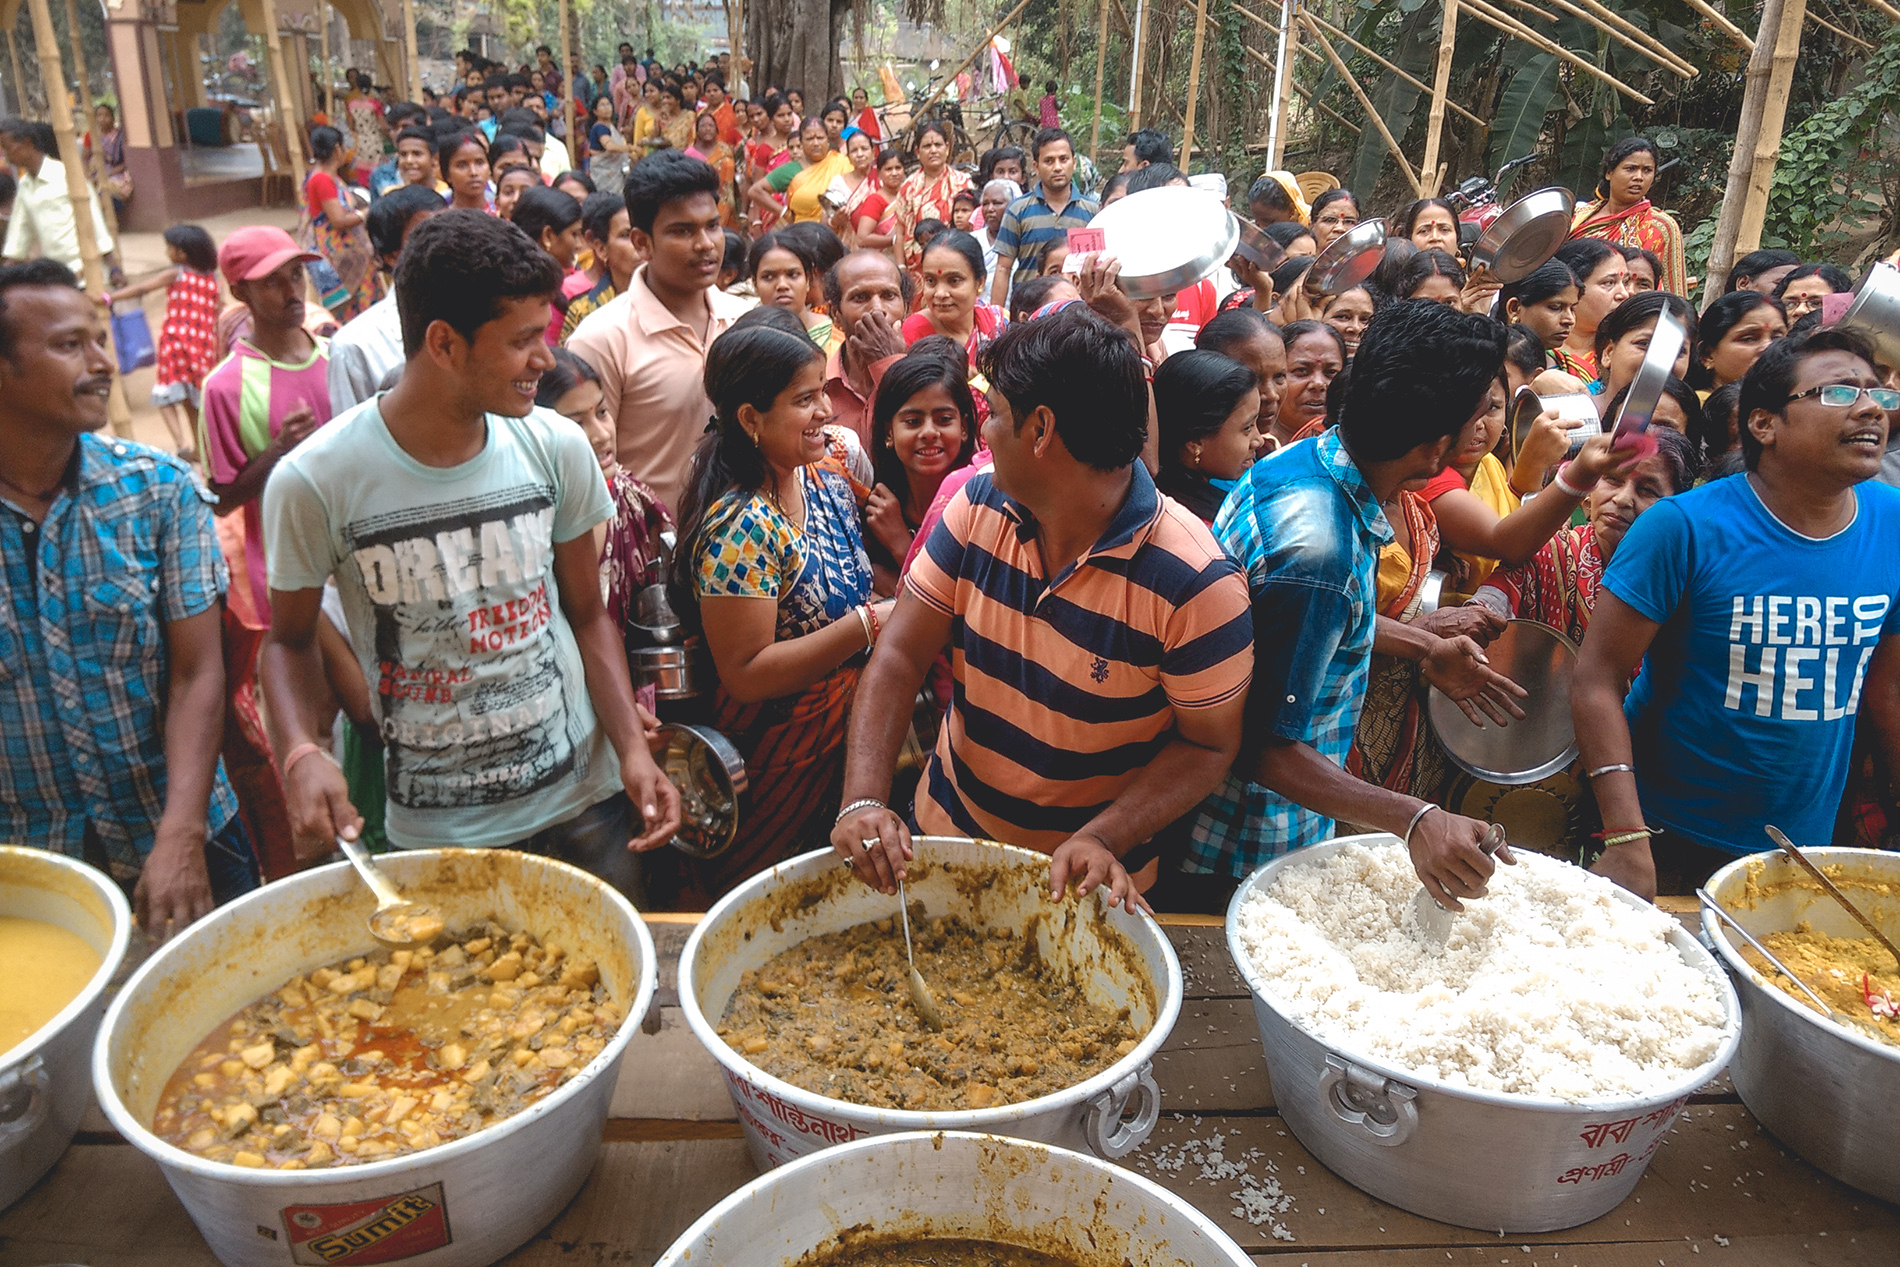 Food distribution during shiva puja